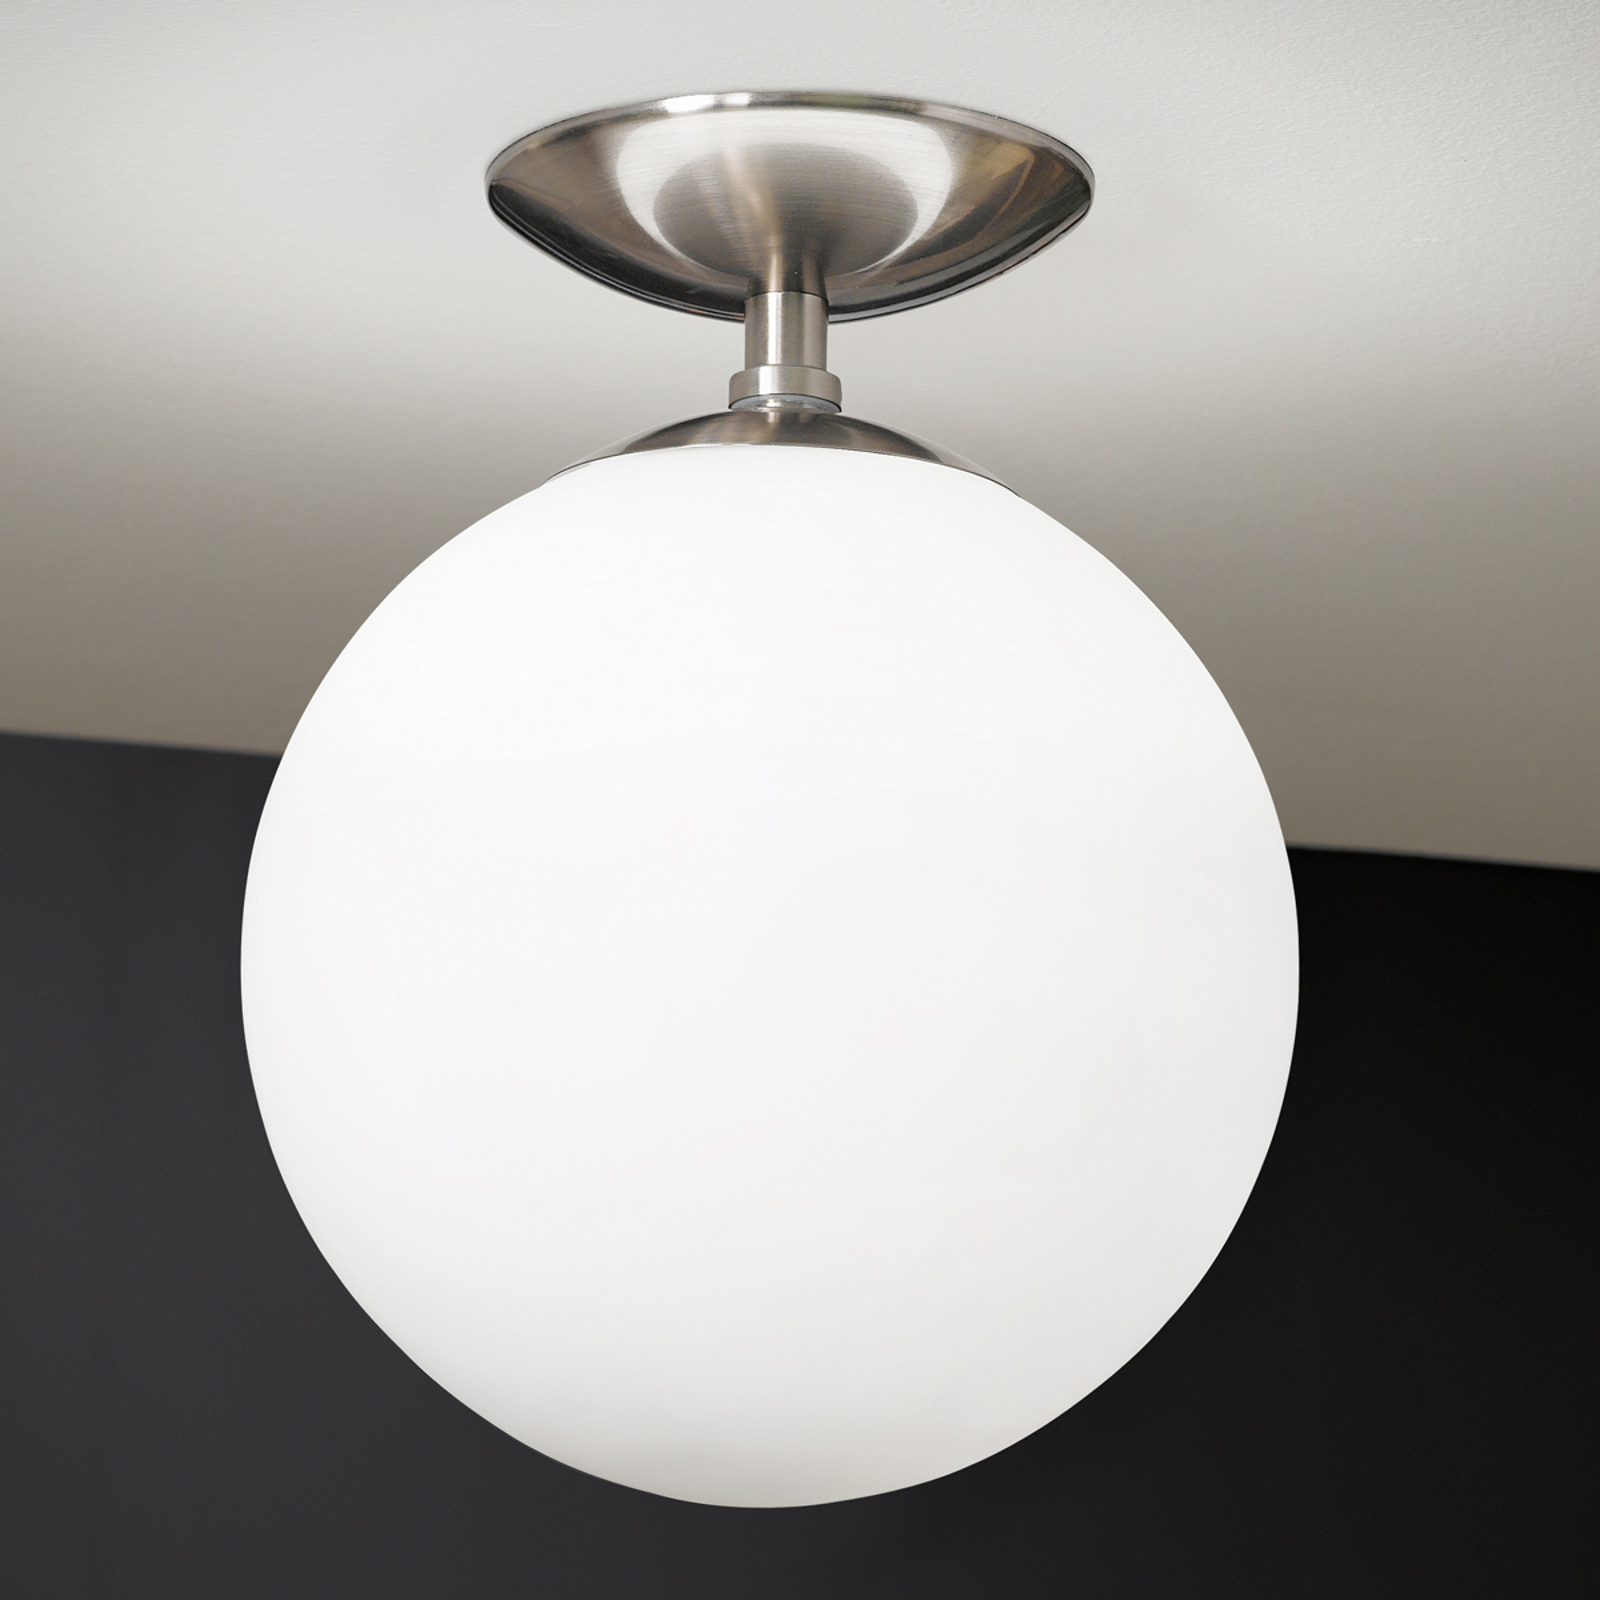 Rondo Subtle Ceiling Lamp_3031255_1